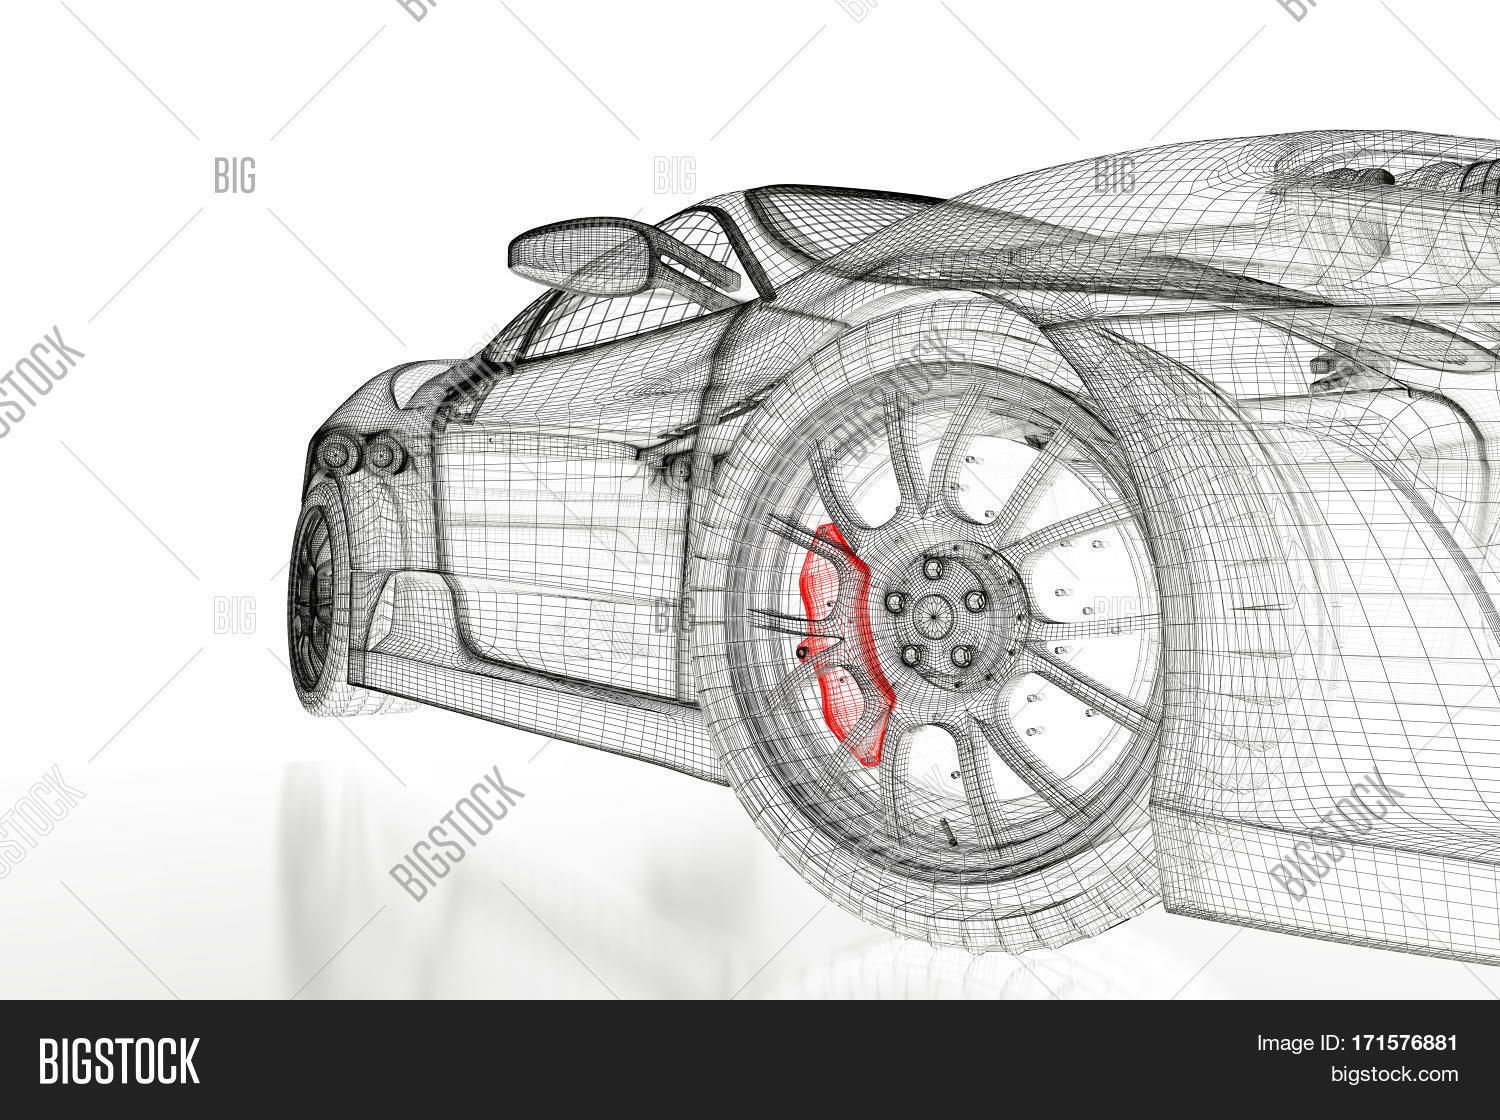 Car vehicle 3d image photo free trial bigstock car vehicle 3d blueprint mesh model with a red brake caliper on a white background malvernweather Gallery